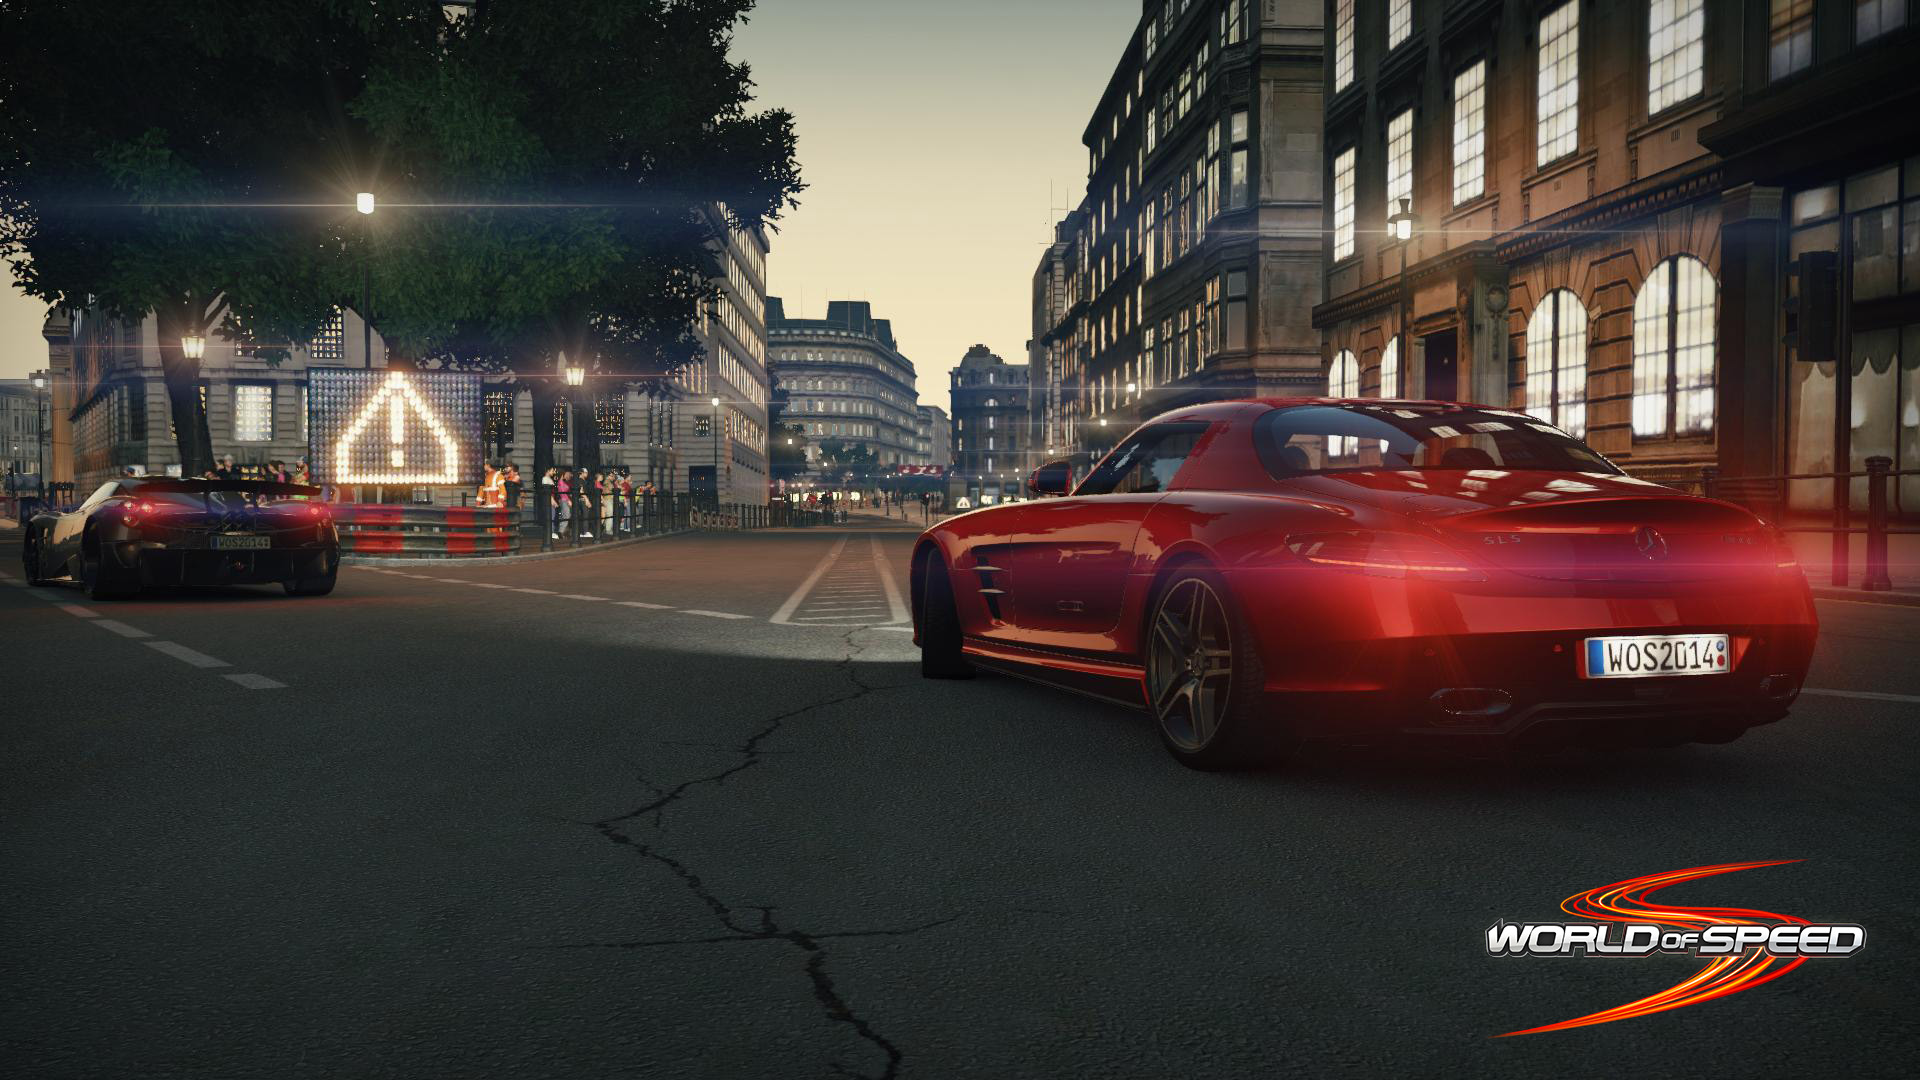 World Of Speed New Screenshots Released For Slightly Mad Studios